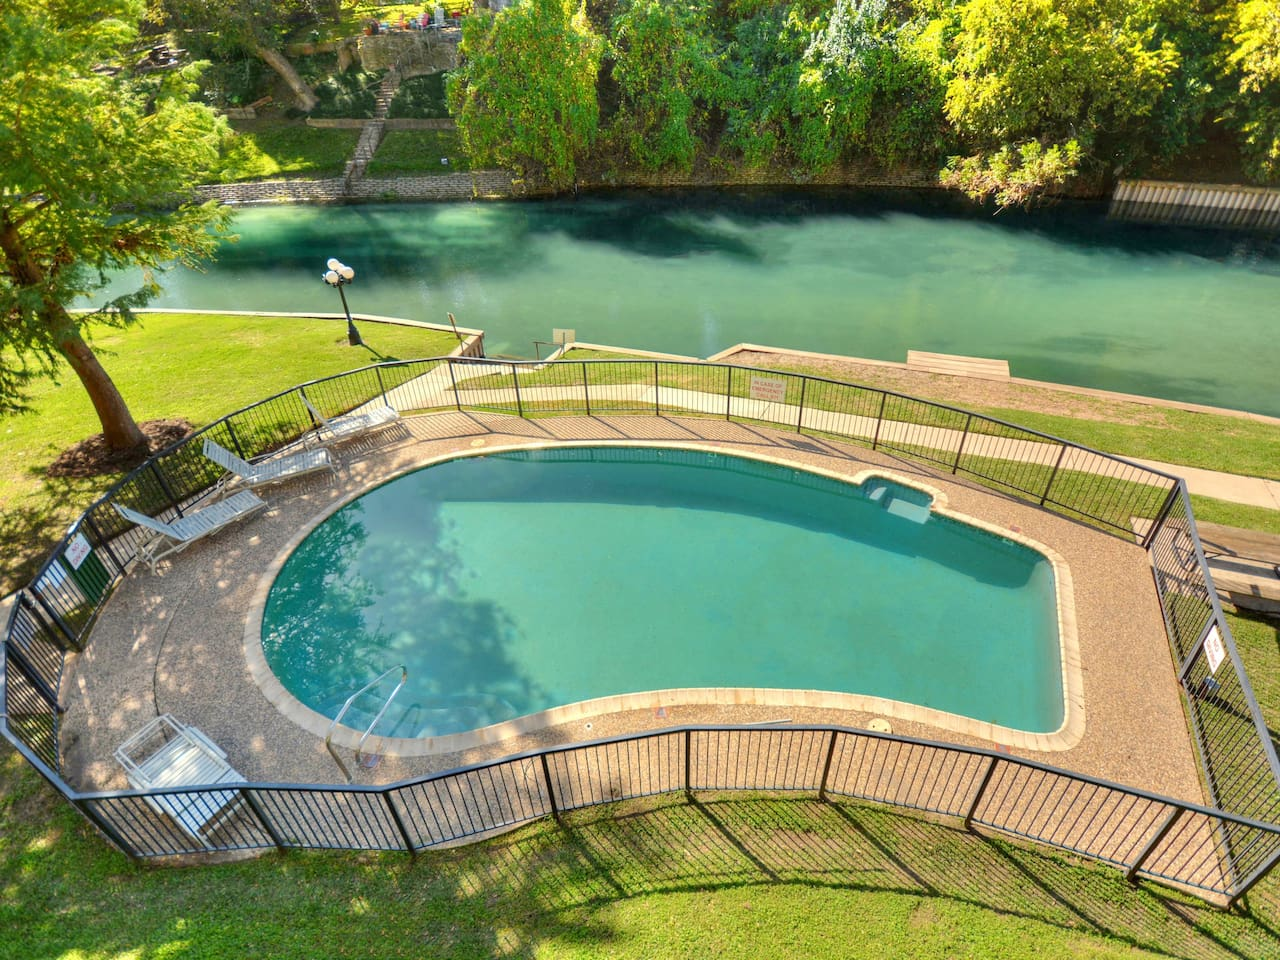 Inverness is the place to be! Direct access into the Comal River and gorgeous views from the pool!